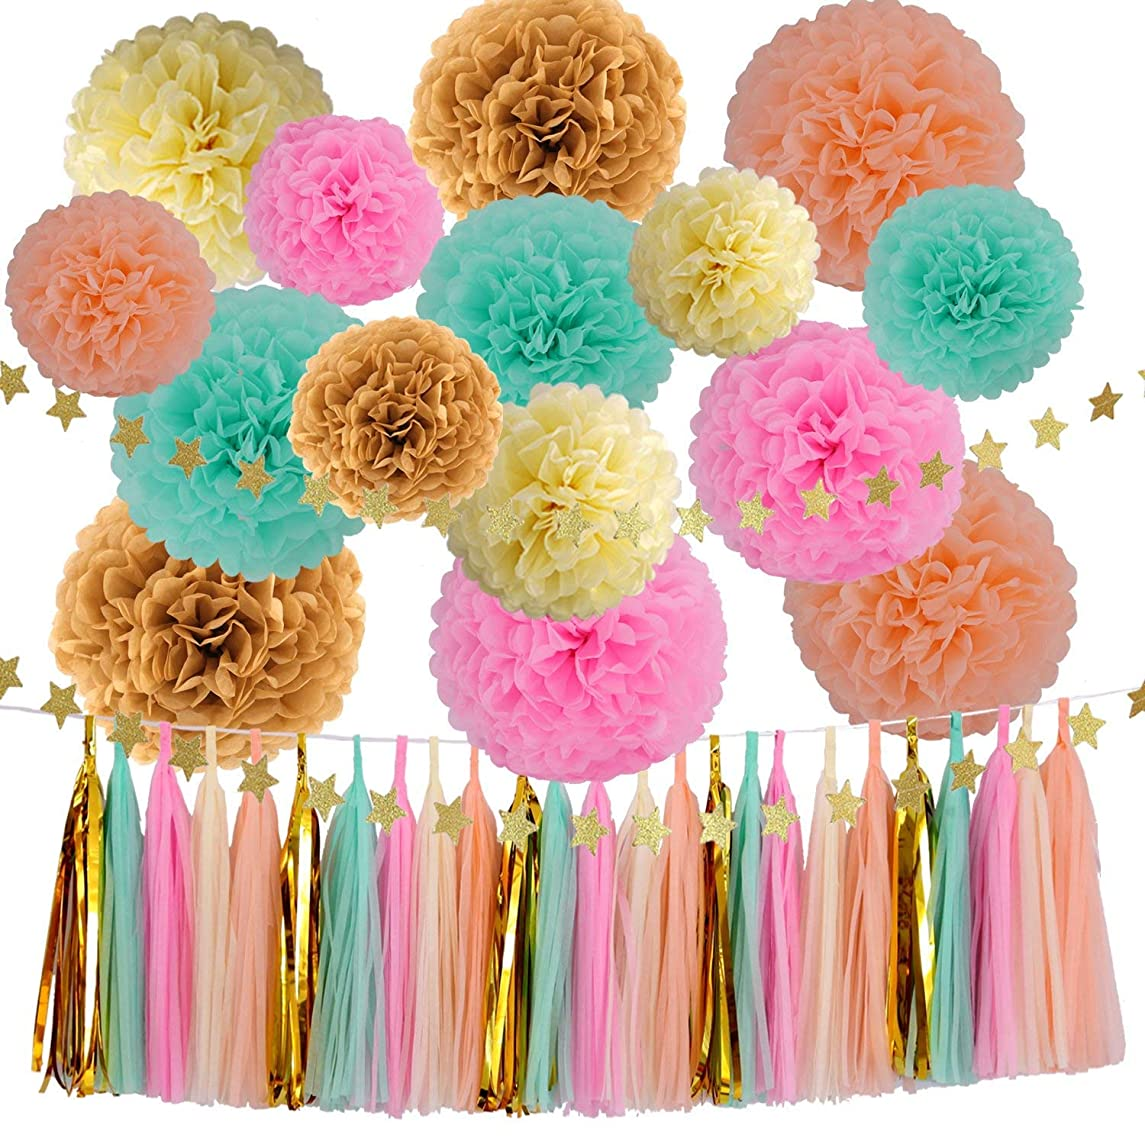 42 Pcs Party Supplies Decorations Kit,Tissue Paper Pom Poms Flower Tissue Paper Garland Kit for Baby Shower Party Wedding Birthday Decorations Room Decor